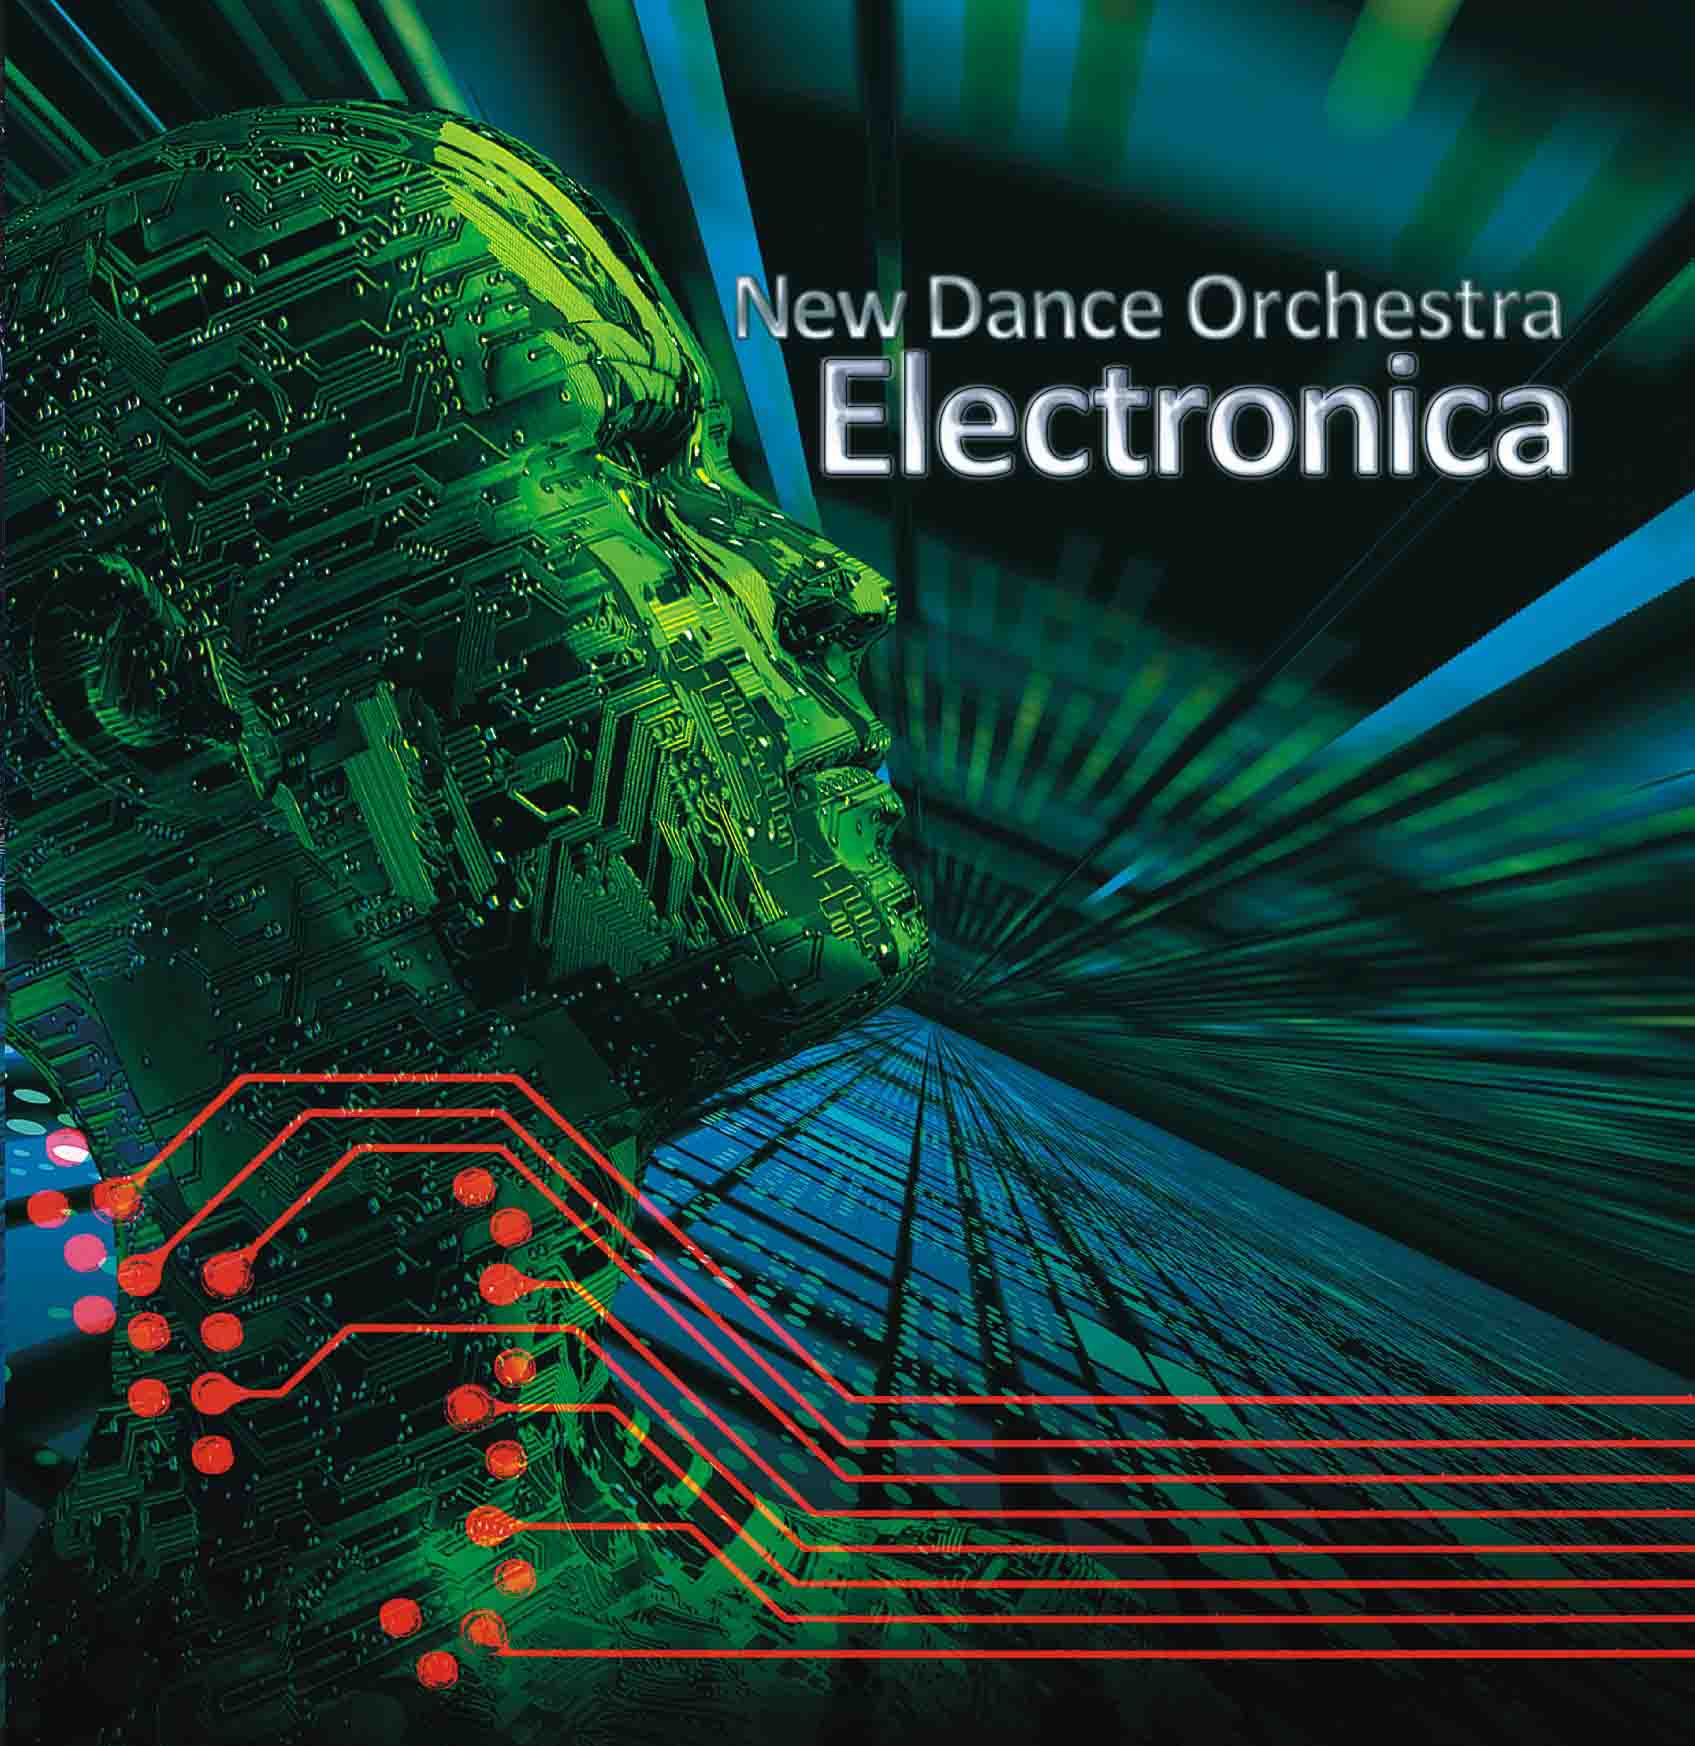 Electronica - New Dance Orchestra